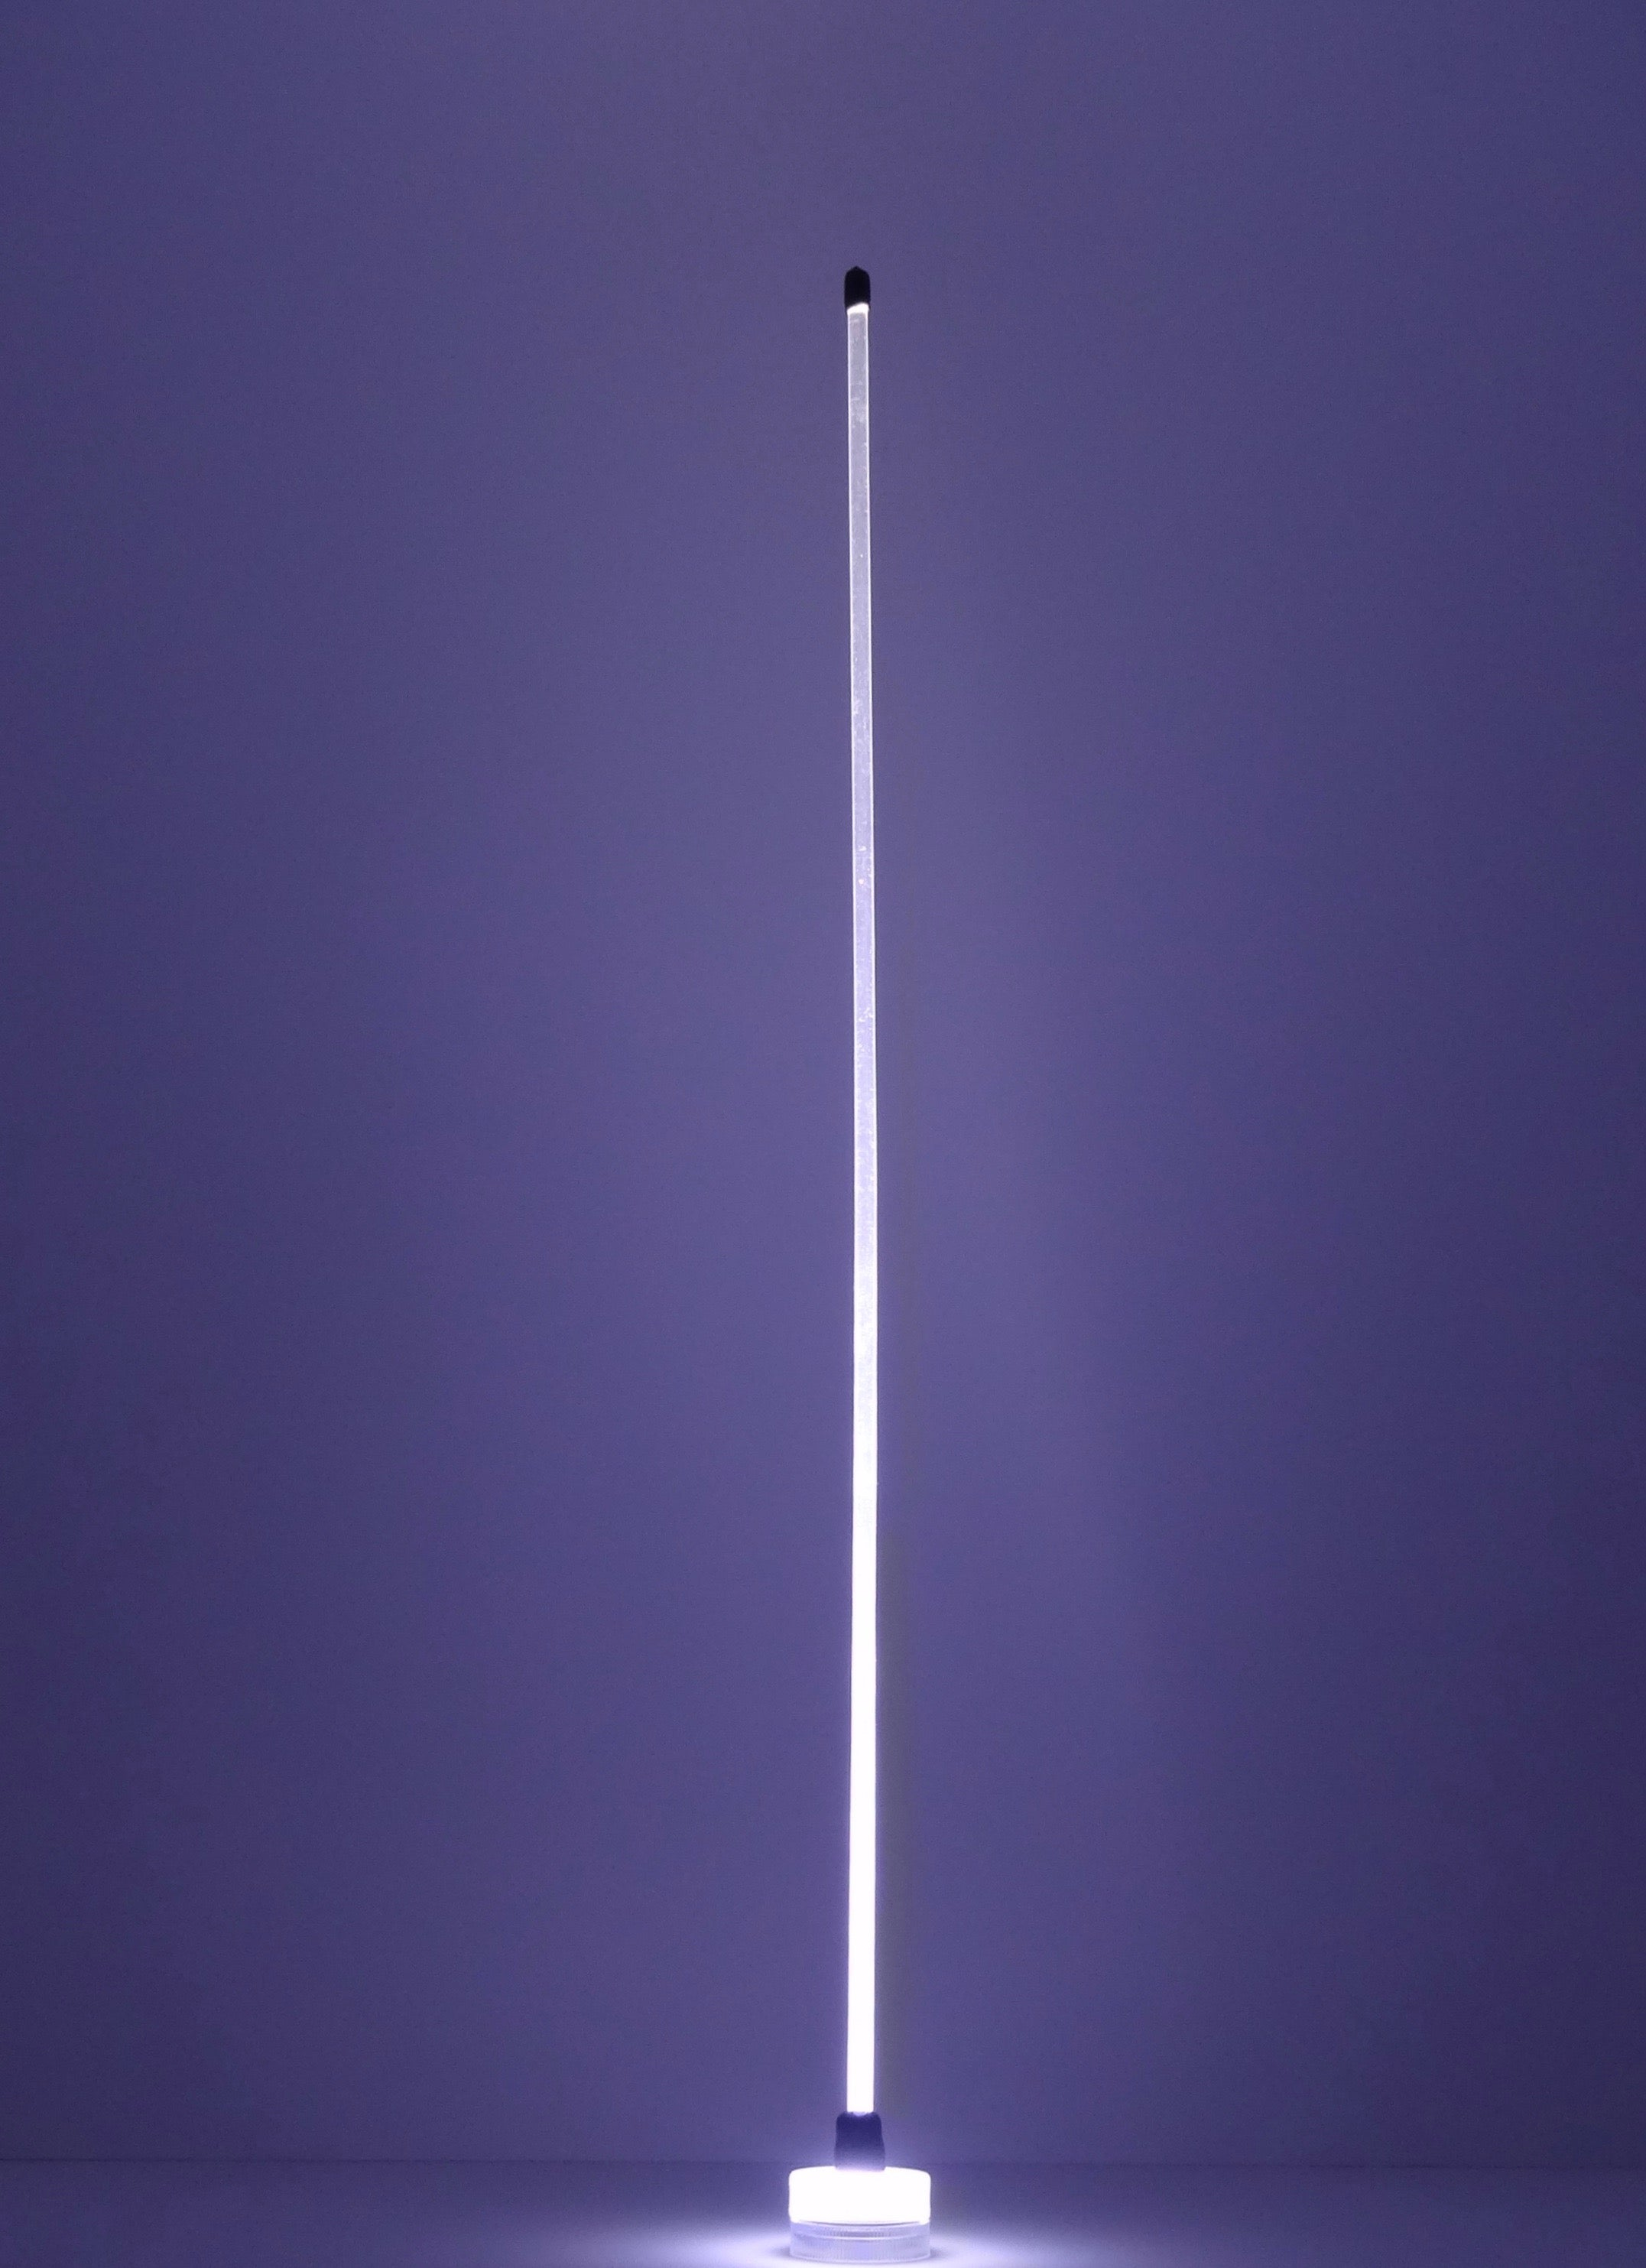 Illuminated Antenna